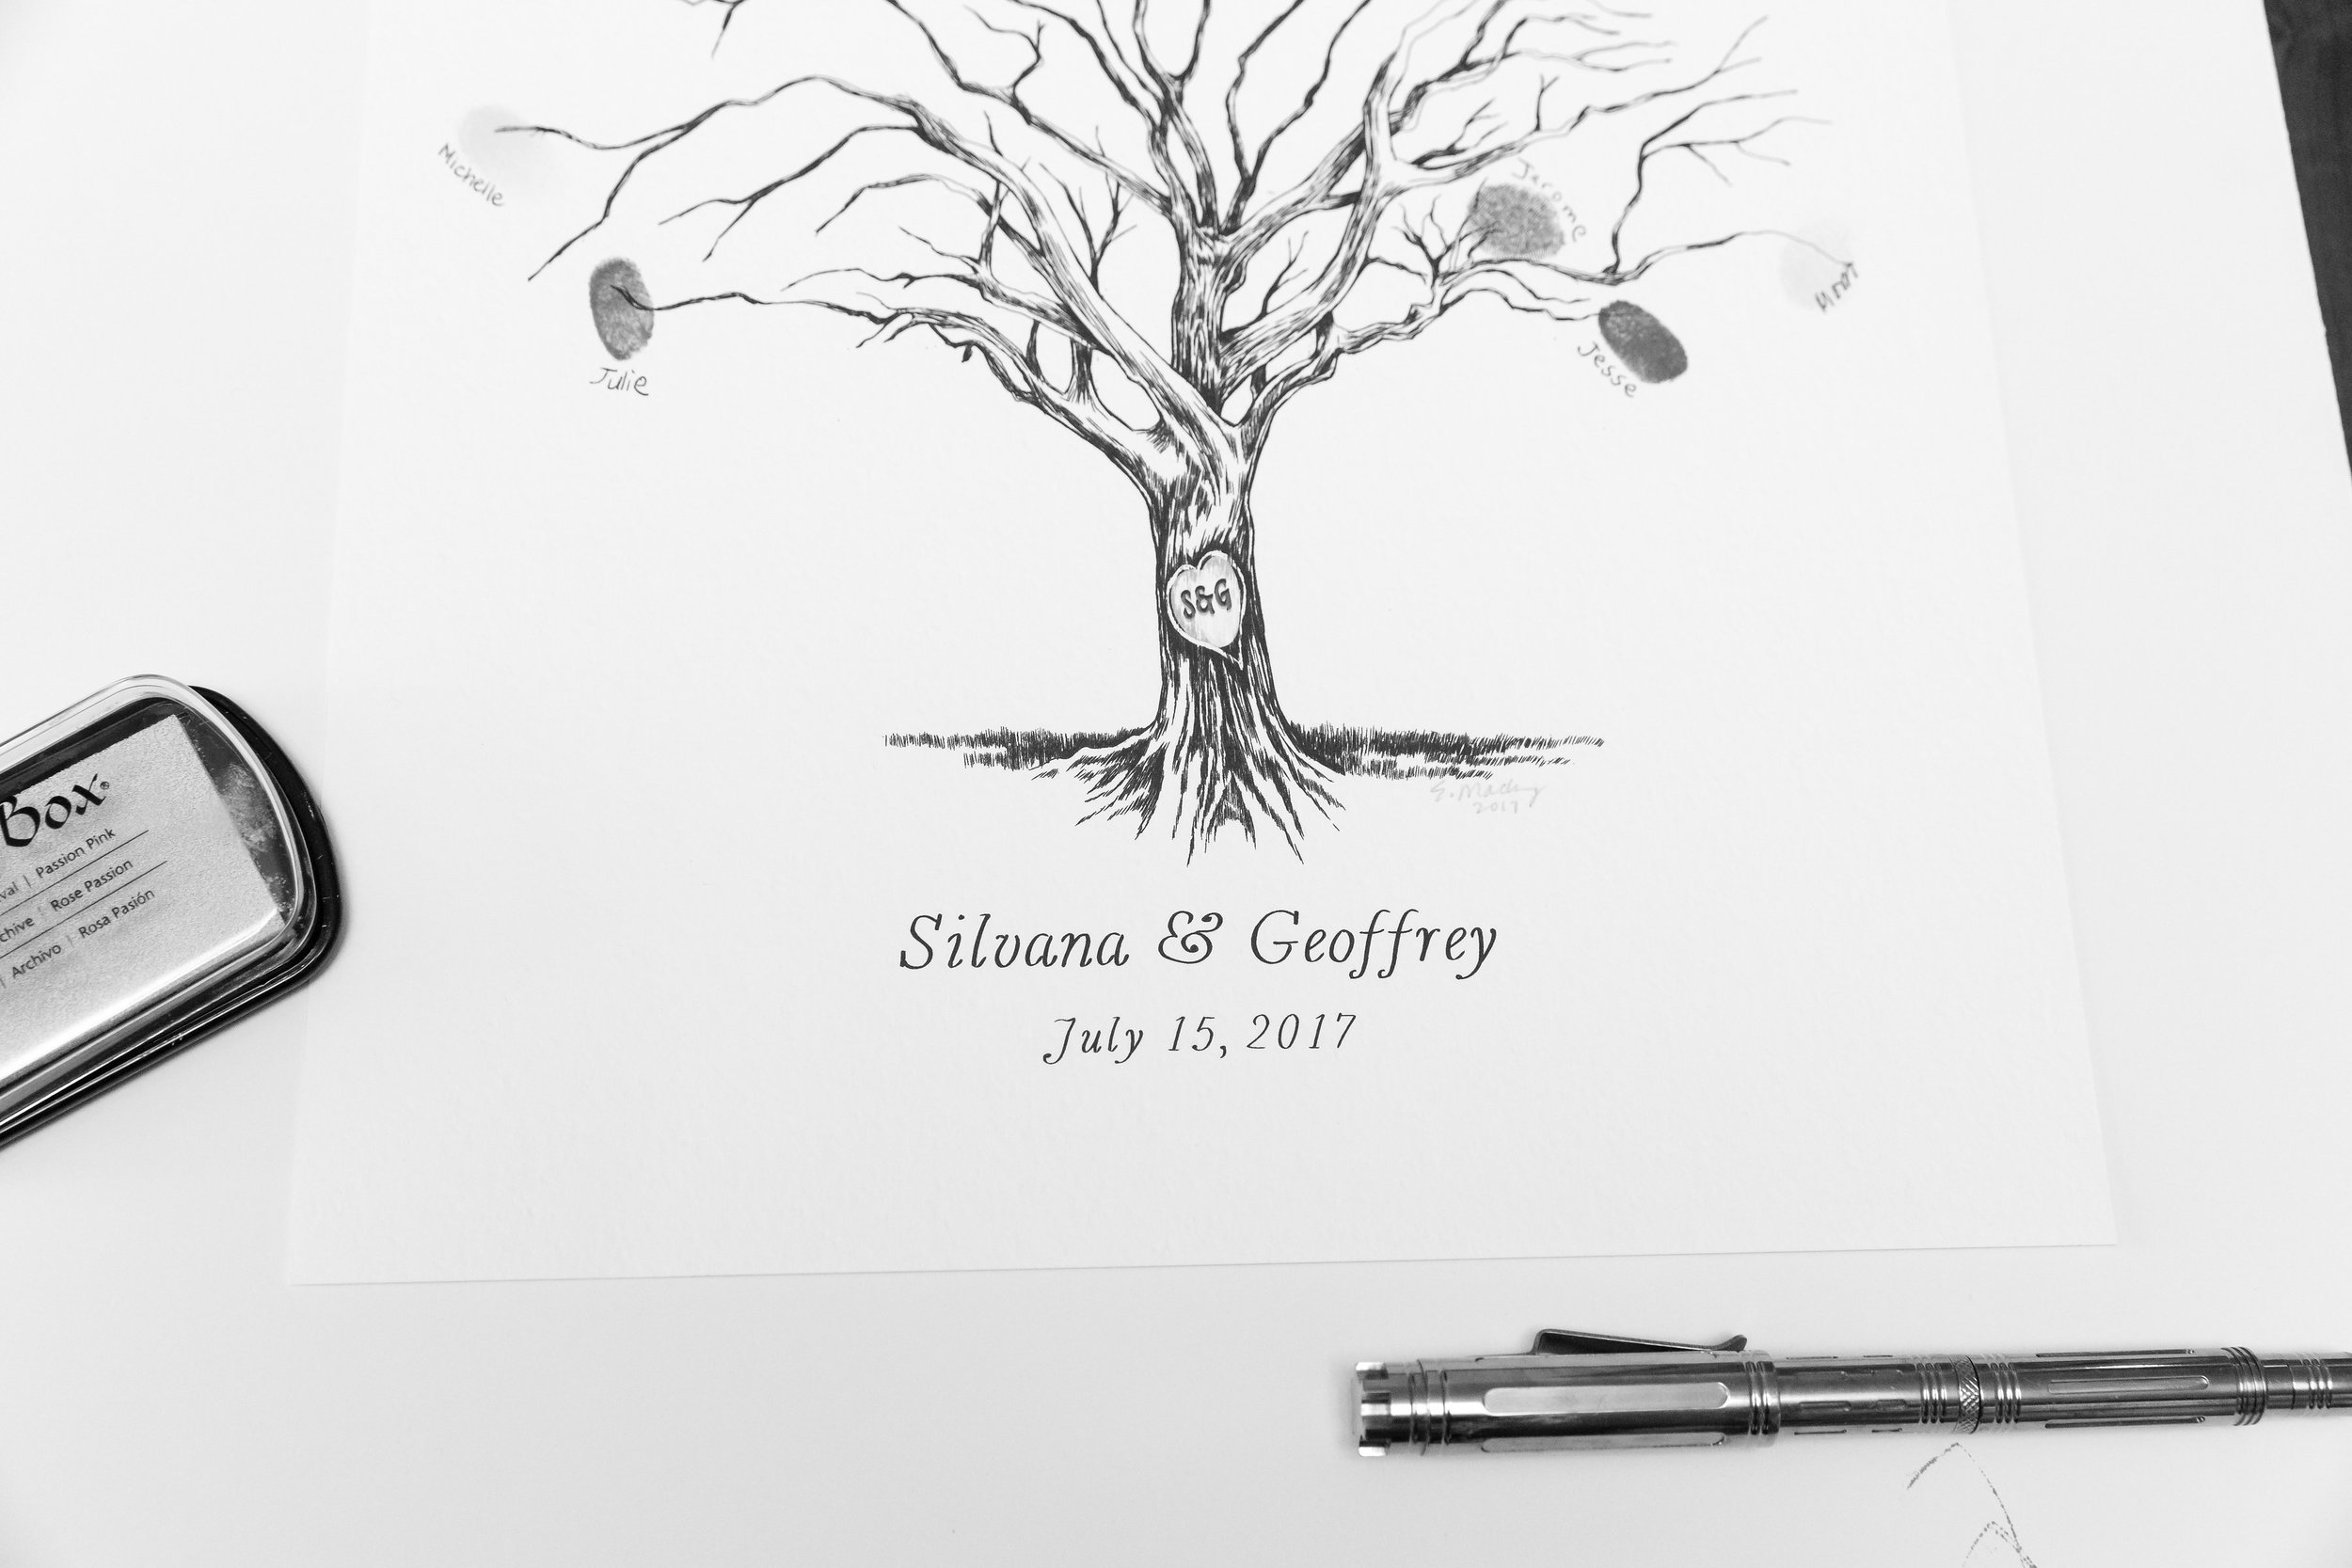 """Loved this creative way for guests to """"sign-in"""". Guests left their fingerprint on a branch of the tree and signed their name for Silvana and Geoffrey to remember."""